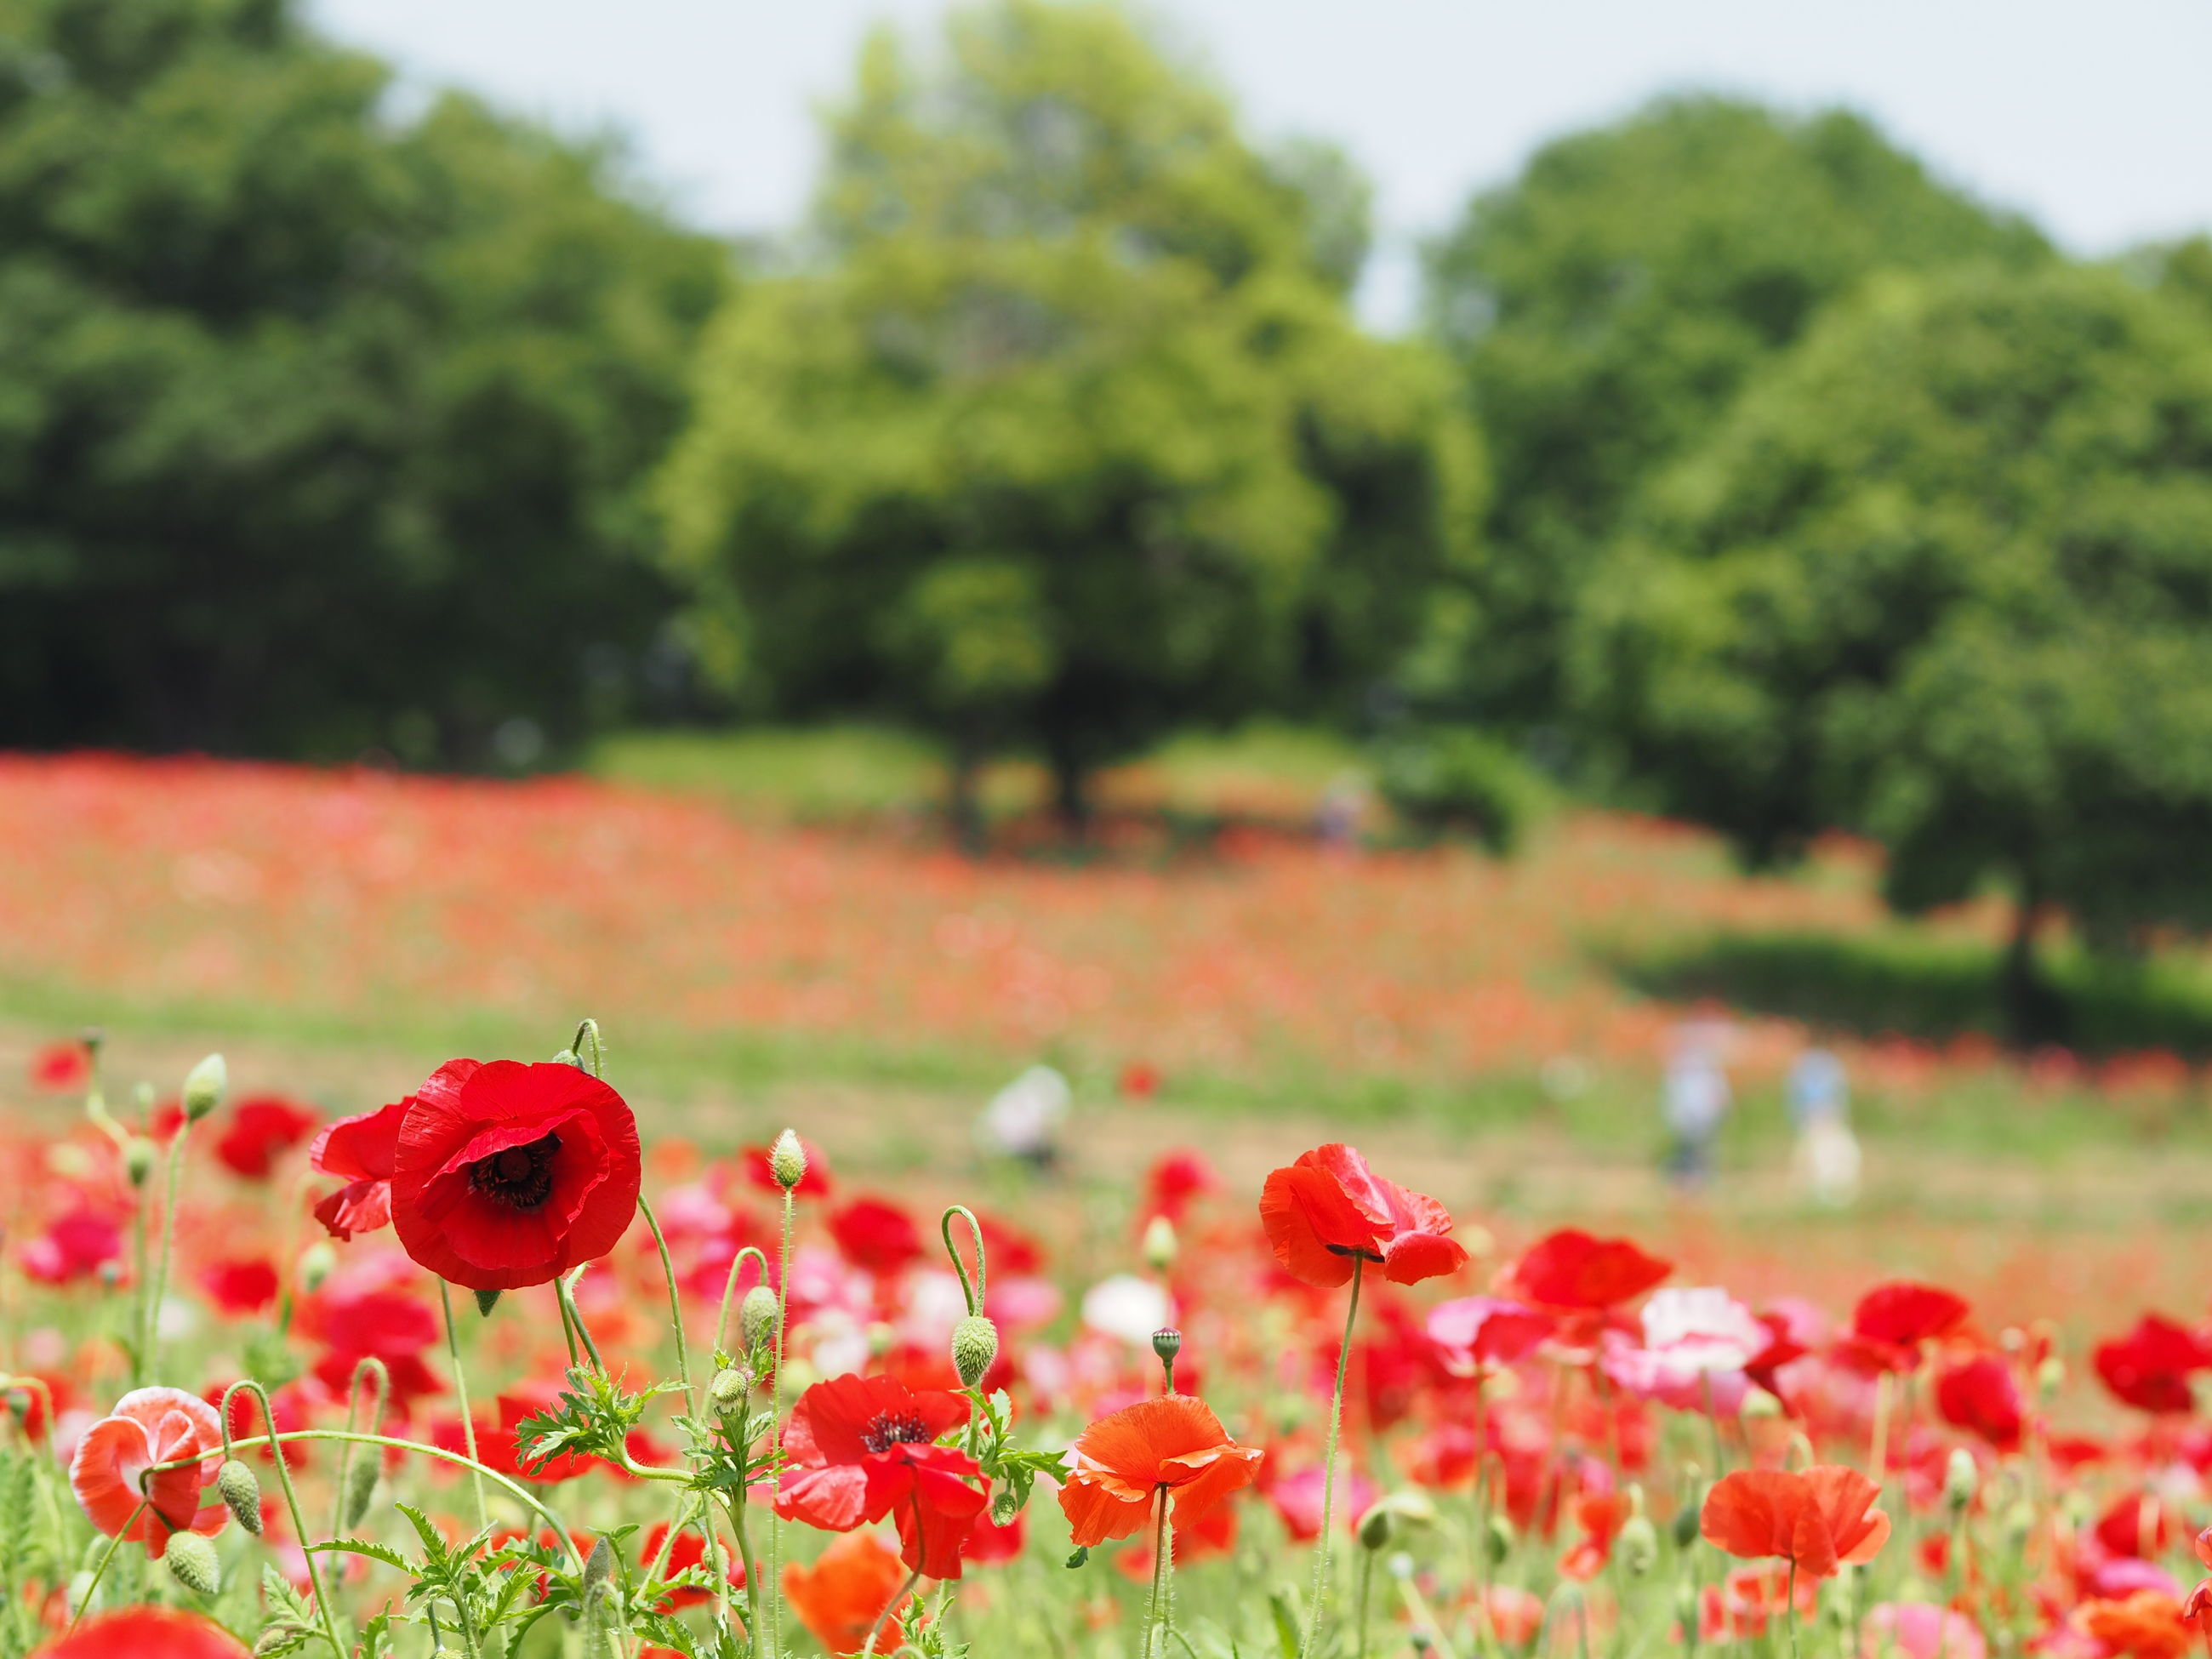 flower, freshness, growth, fragility, beauty in nature, blooming, petal, field, nature, focus on foreground, plant, flower head, in bloom, red, landscape, tranquil scene, tranquility, blossom, tree, springtime